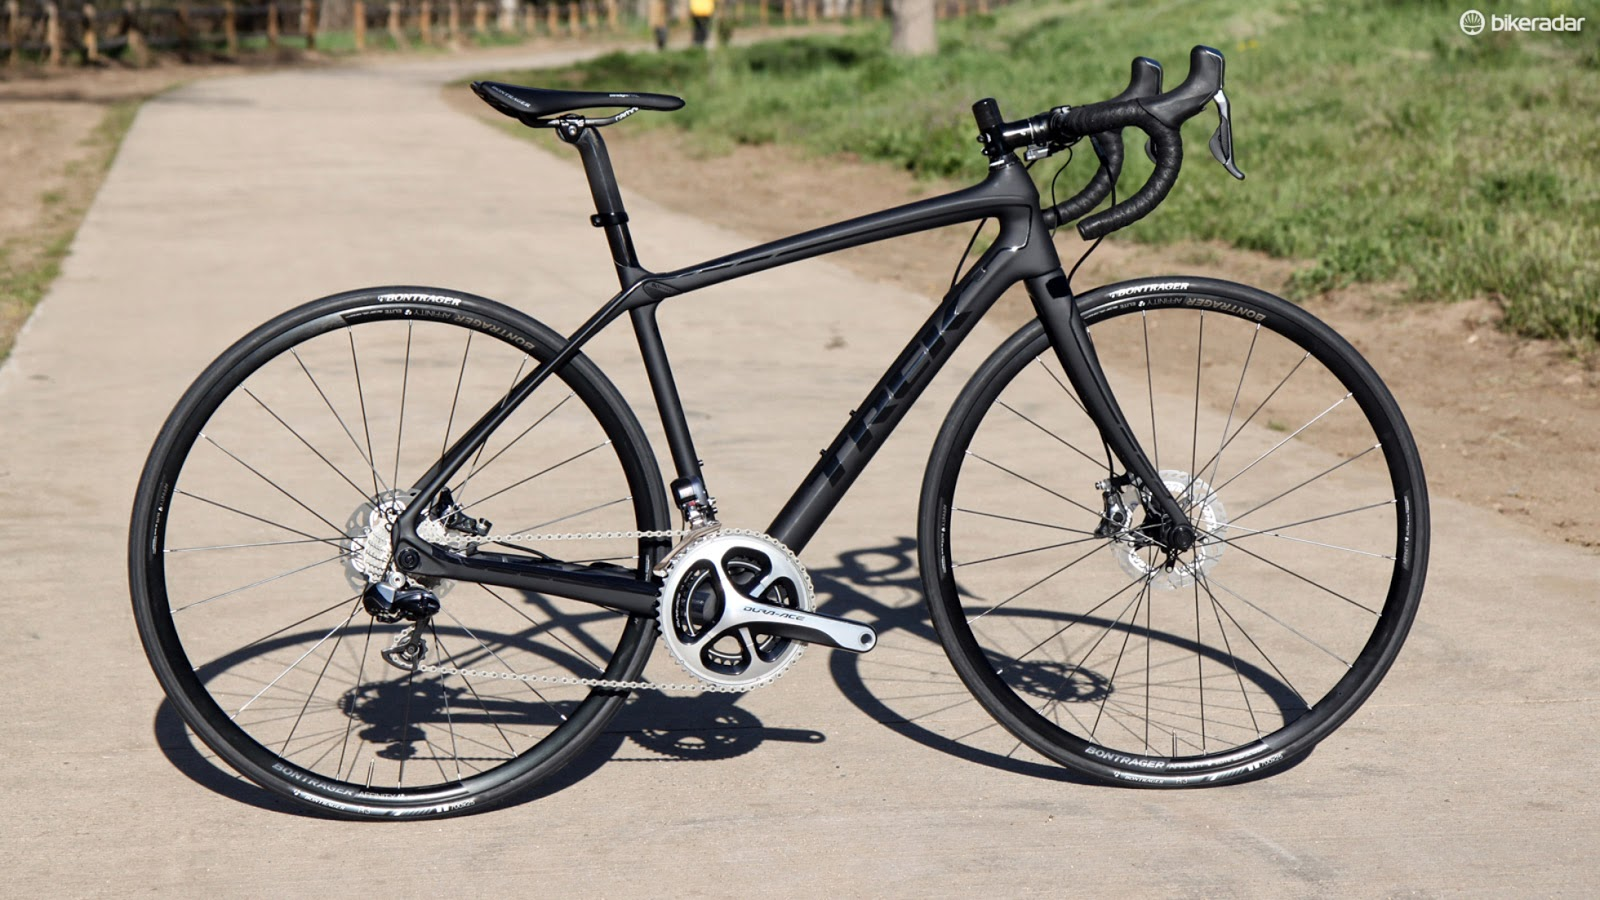 Schellers Fitness and Cycling: Trek Domane 6.9 Disc Long-Term Ride